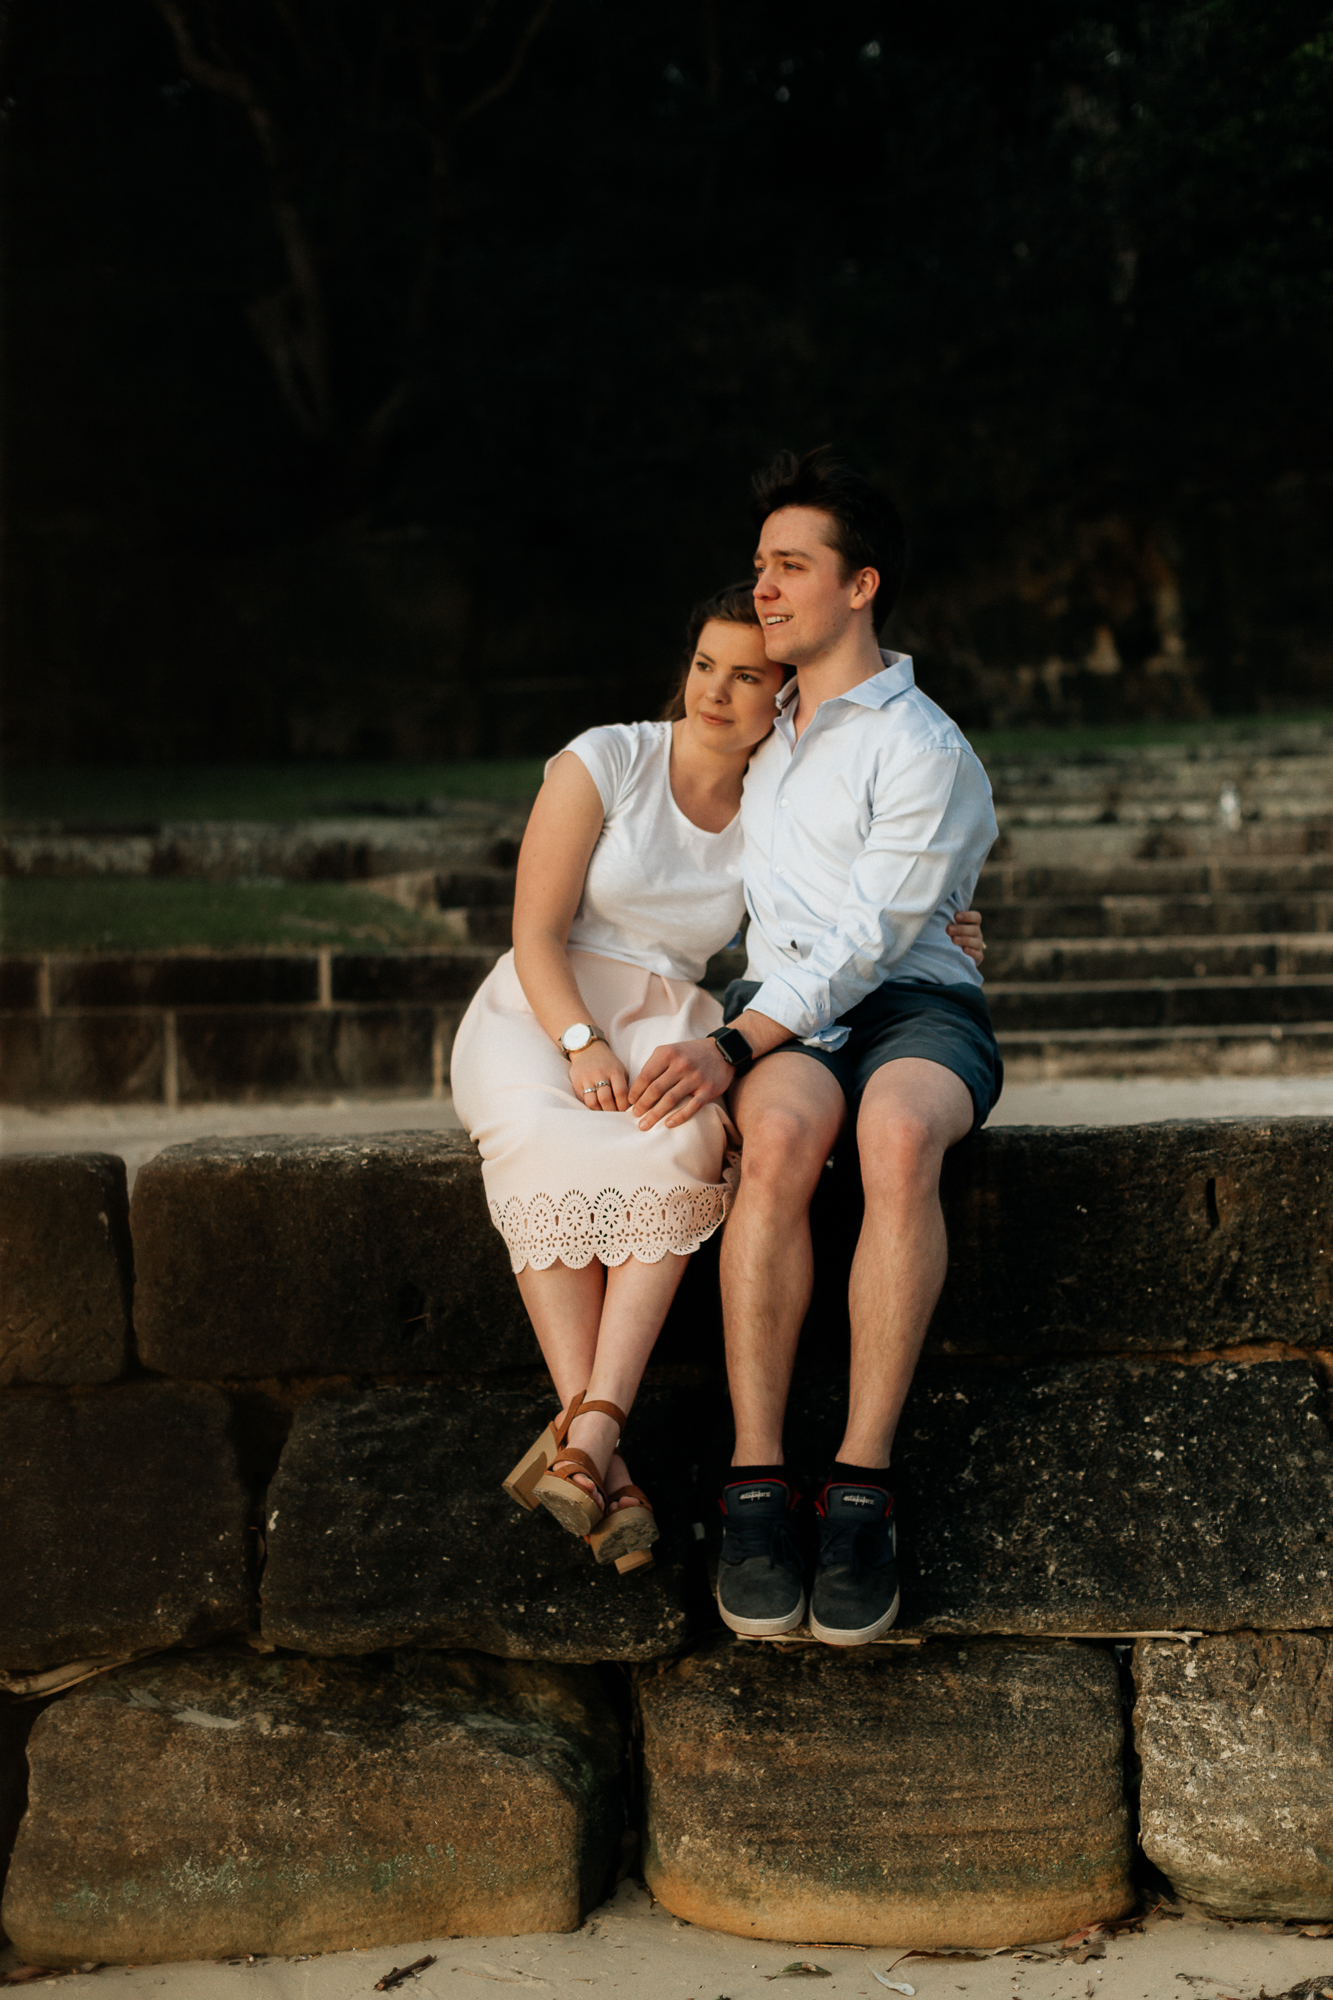 Amanzi and Steven_Engagement_Sydney_Holly Medway Photography-6.JPG